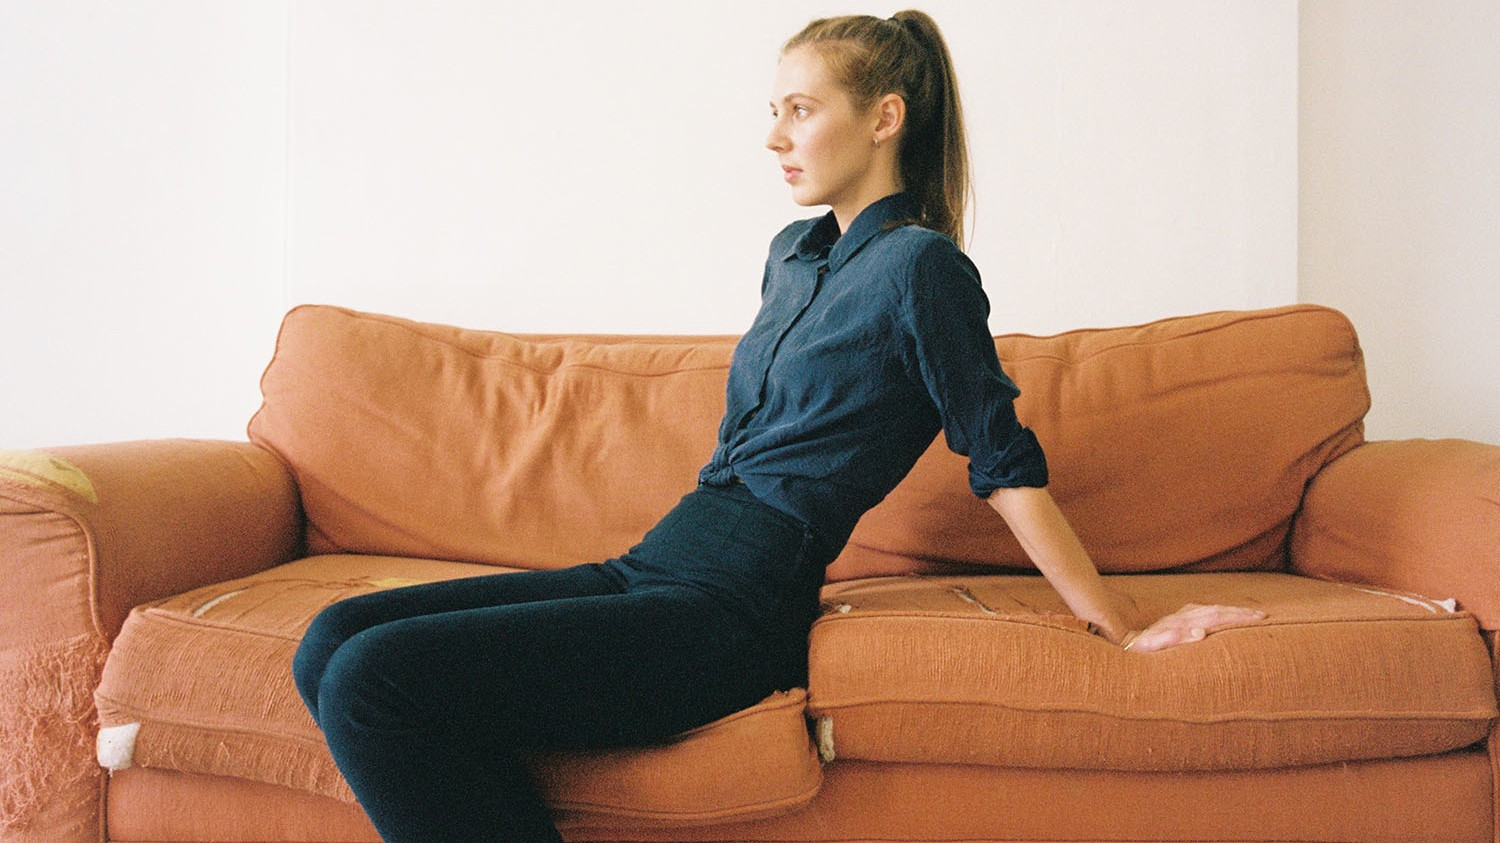 carla dal forno: music to ... mistrust